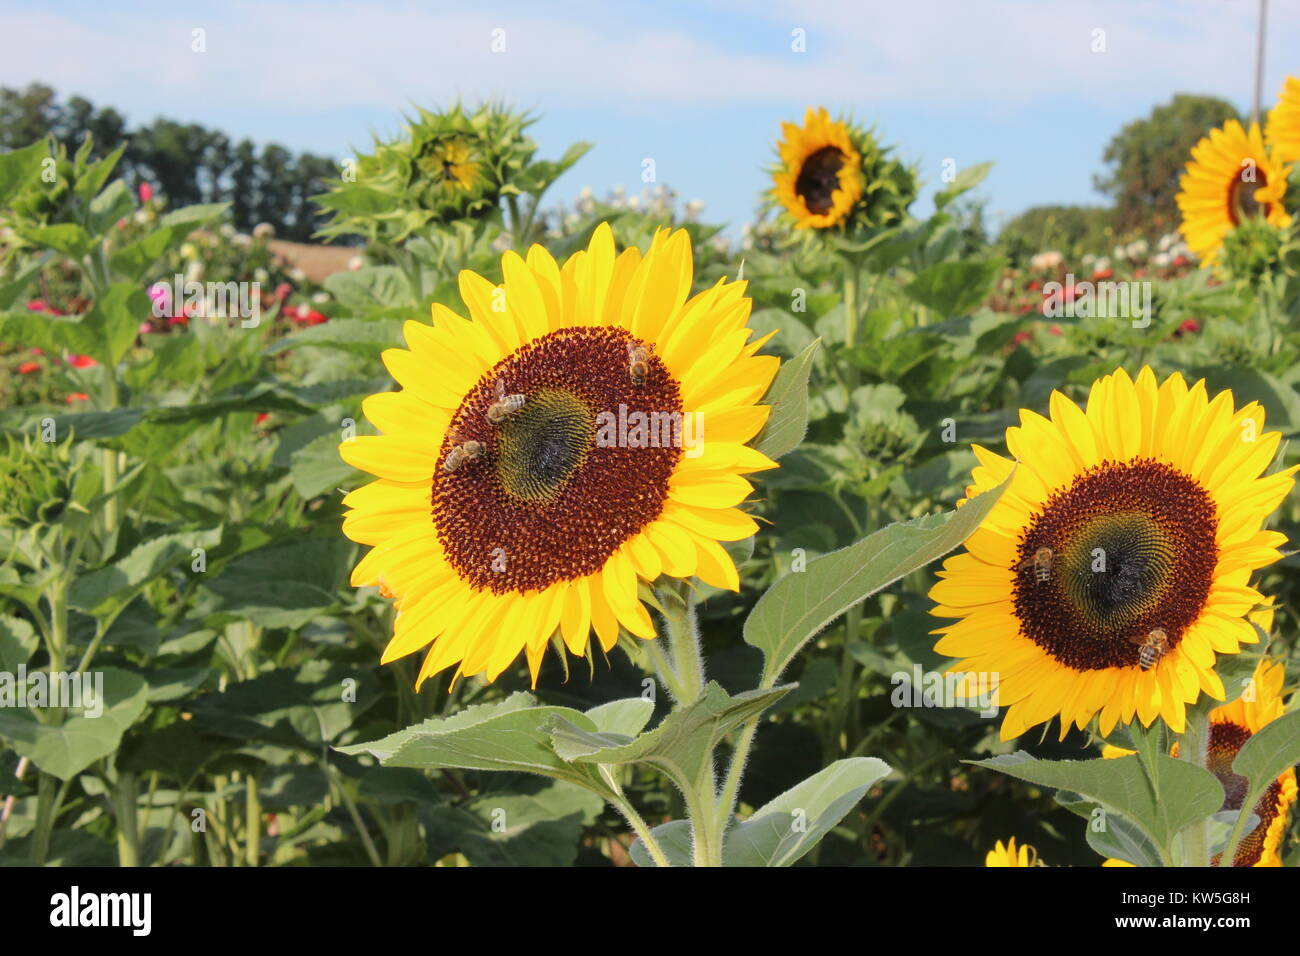 Bees on sunflowers - Stock Image